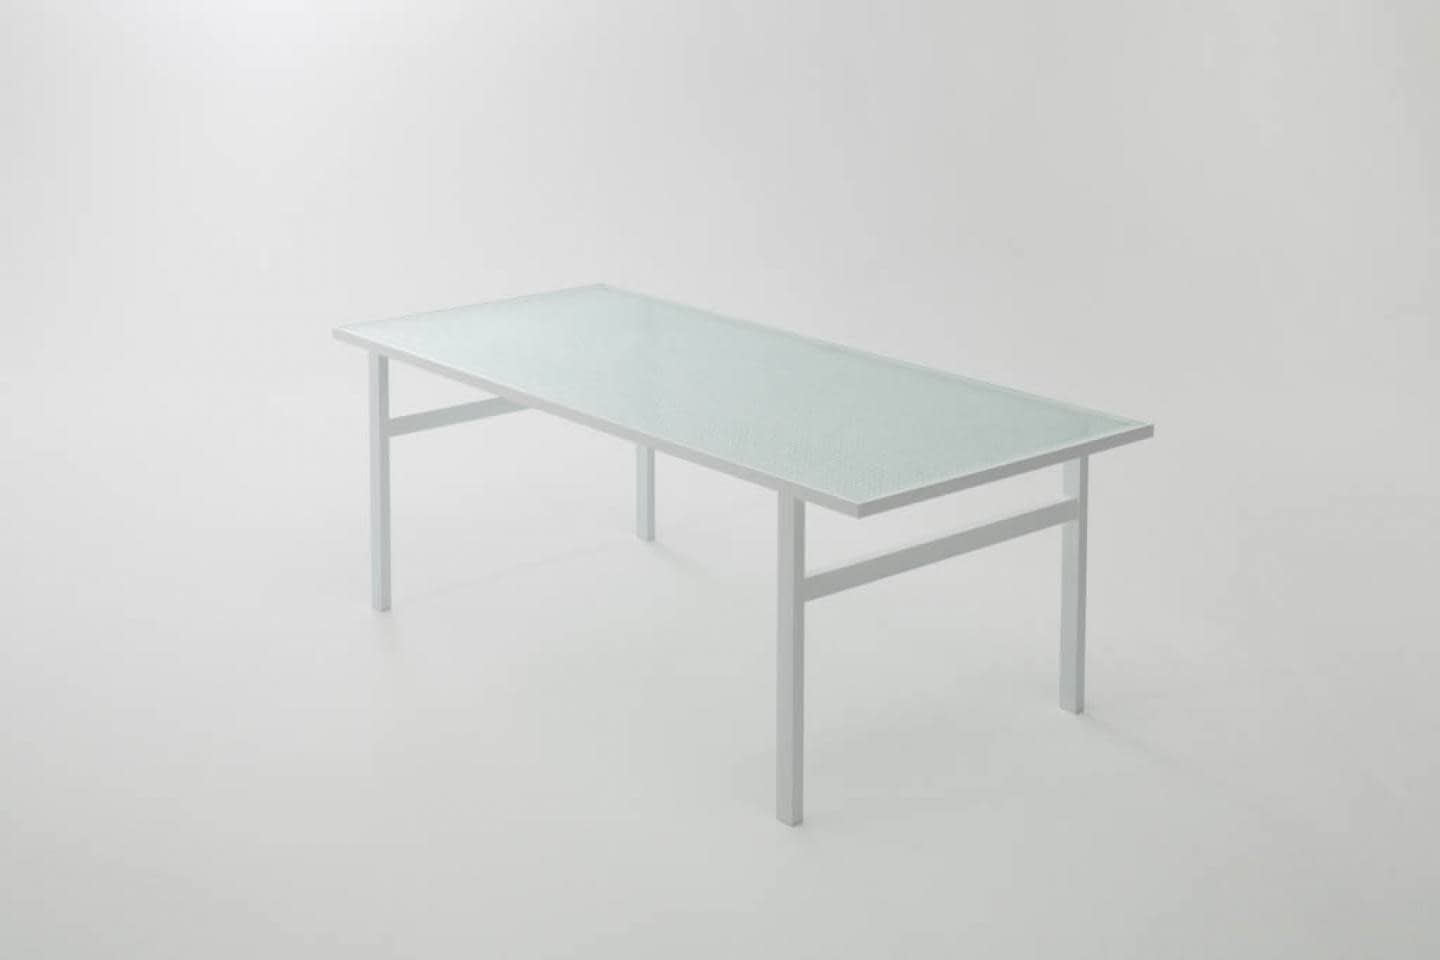 Dilmos-mosaic-glass-table01